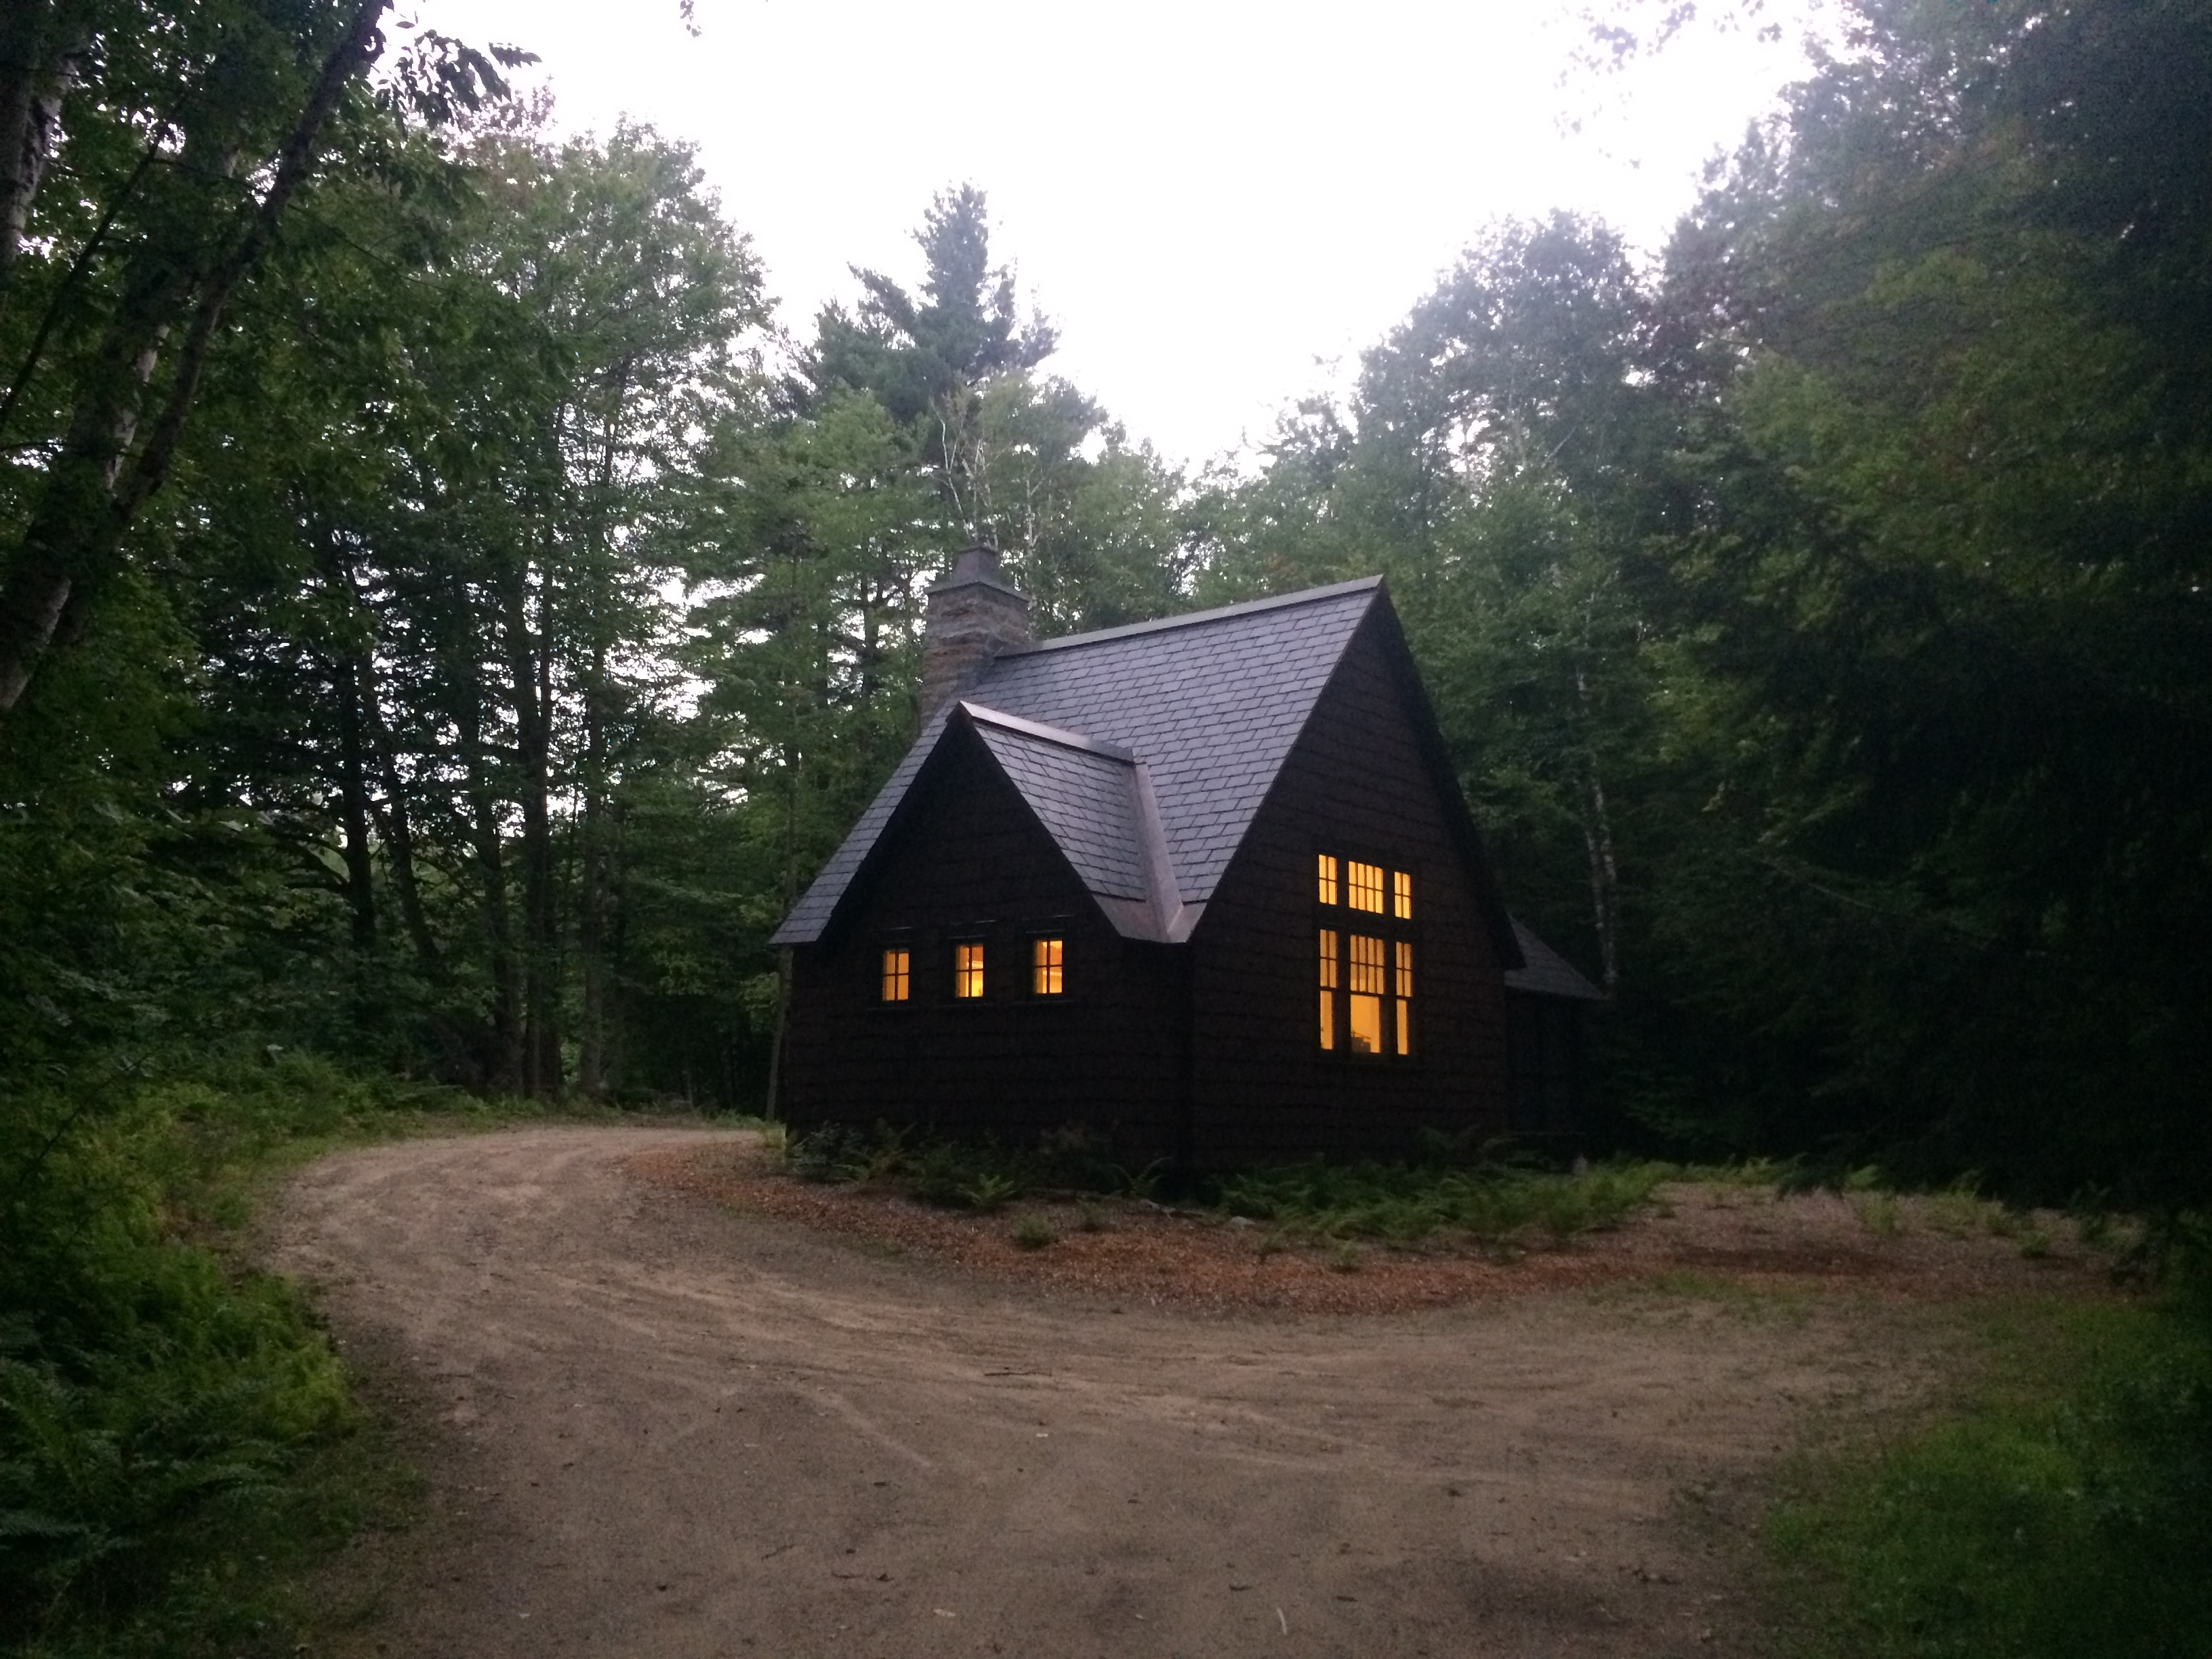 composer-in-residence, macdowell, united states